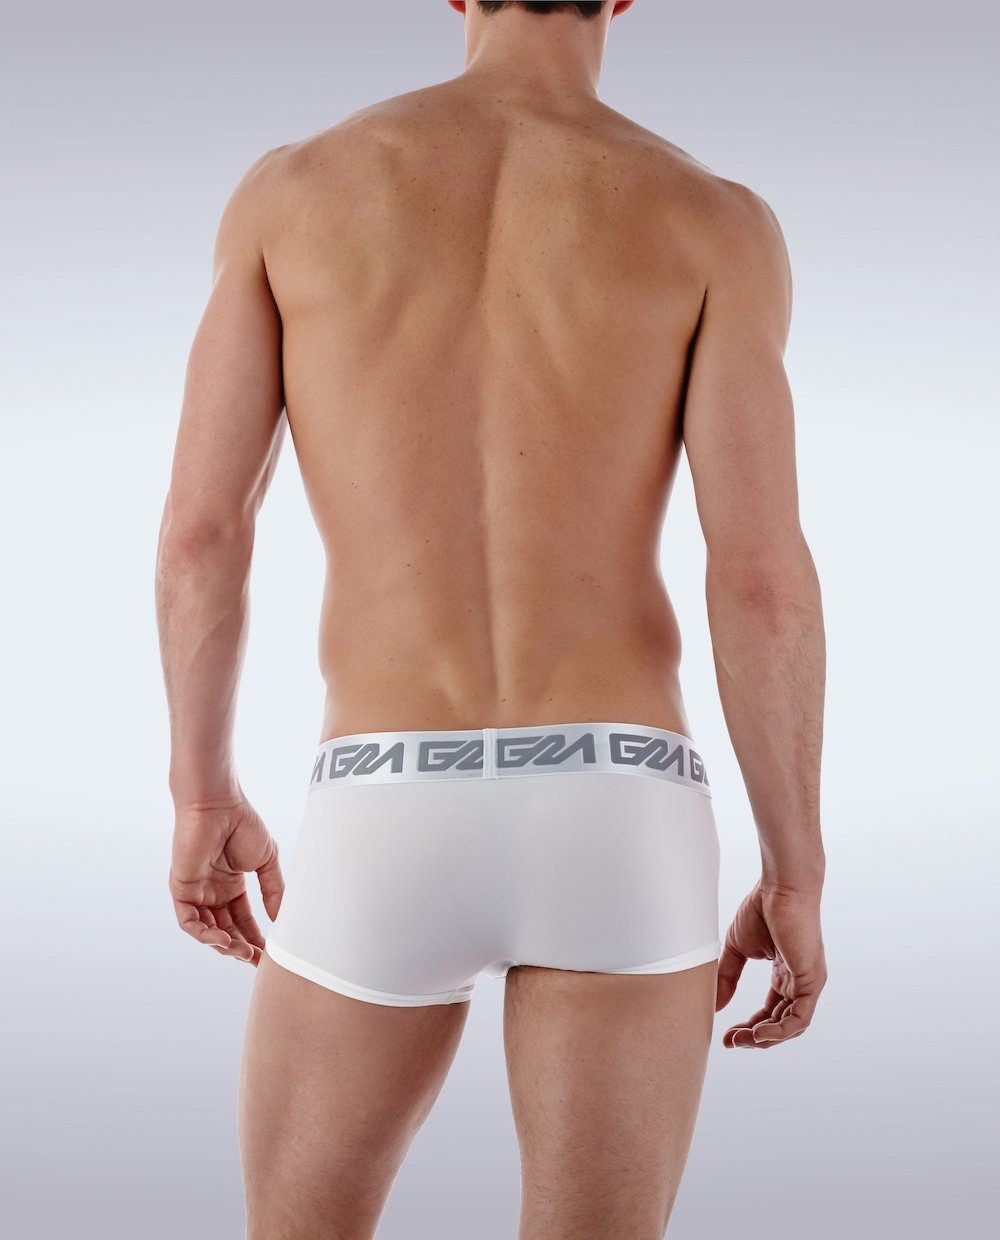 COLLINS Trunk - Garçon Underwear sexy men's underwear Trunks Garçon Underwear